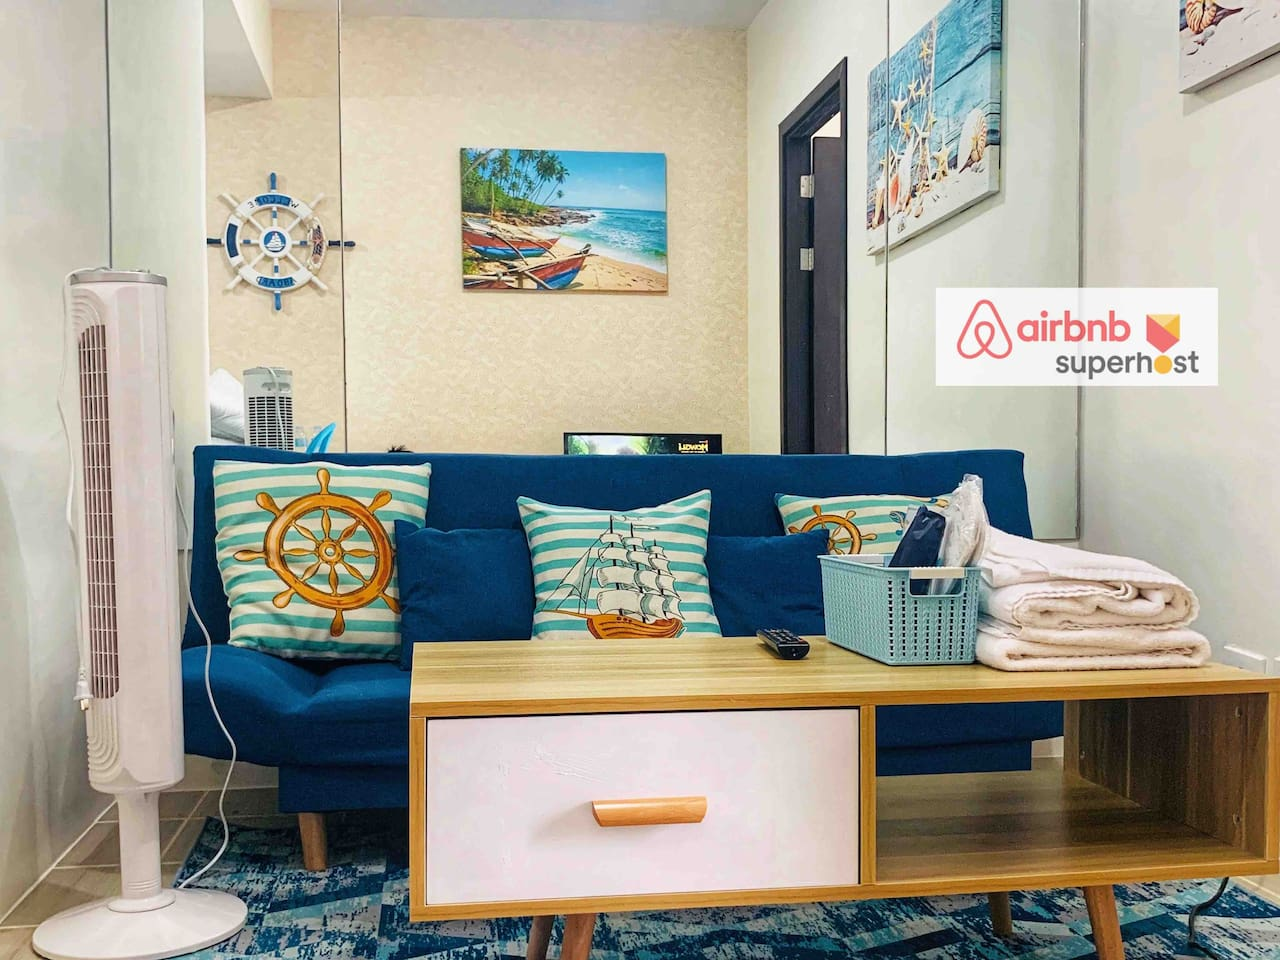 Certified Airbnb Superhost